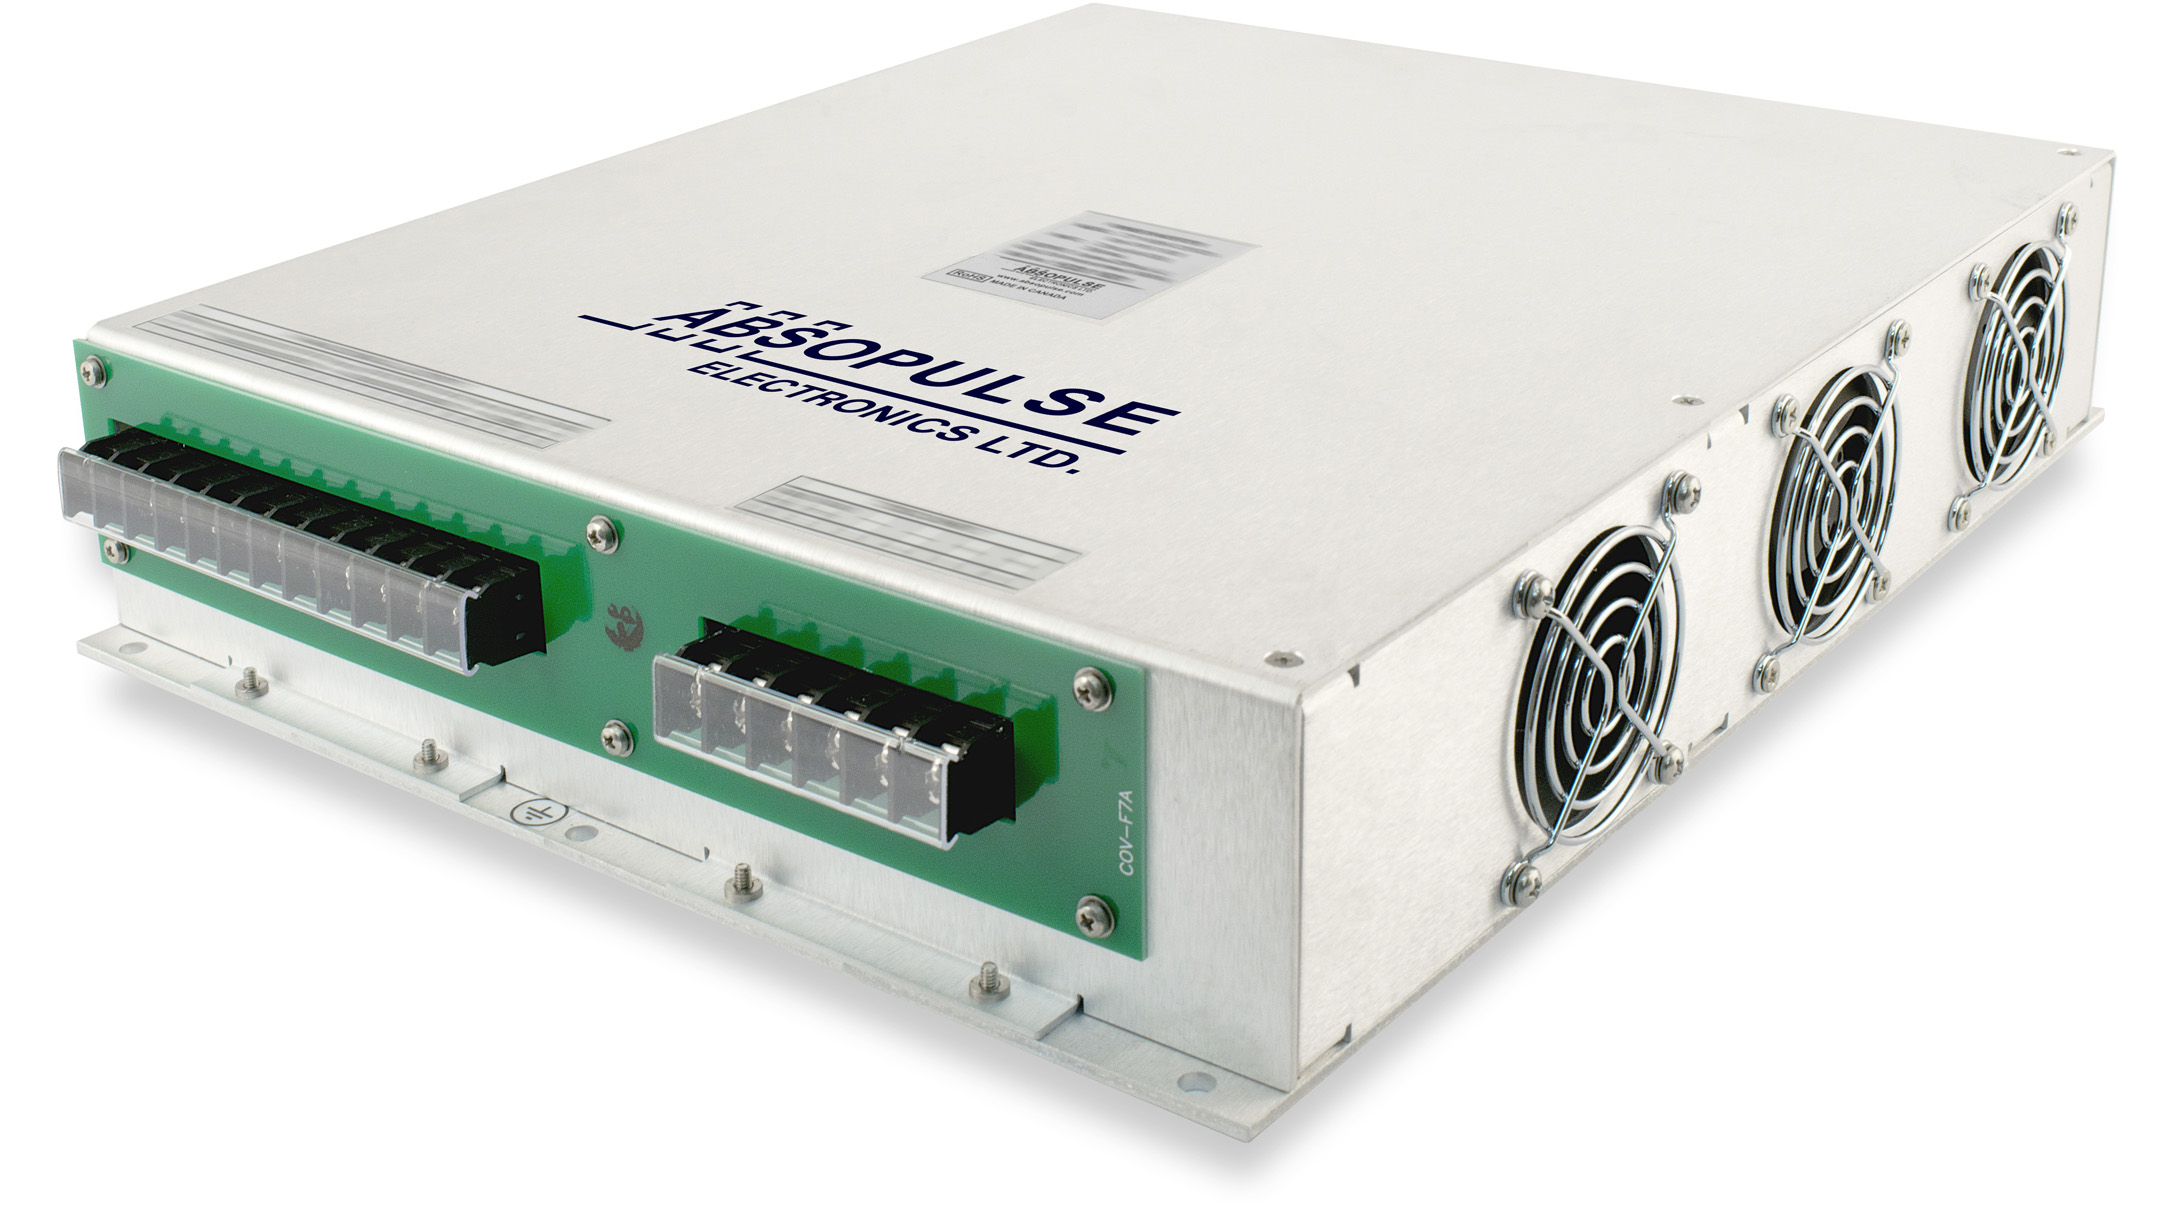 Split-Phase AC-Output Frequency Converters Deliver 1kVA